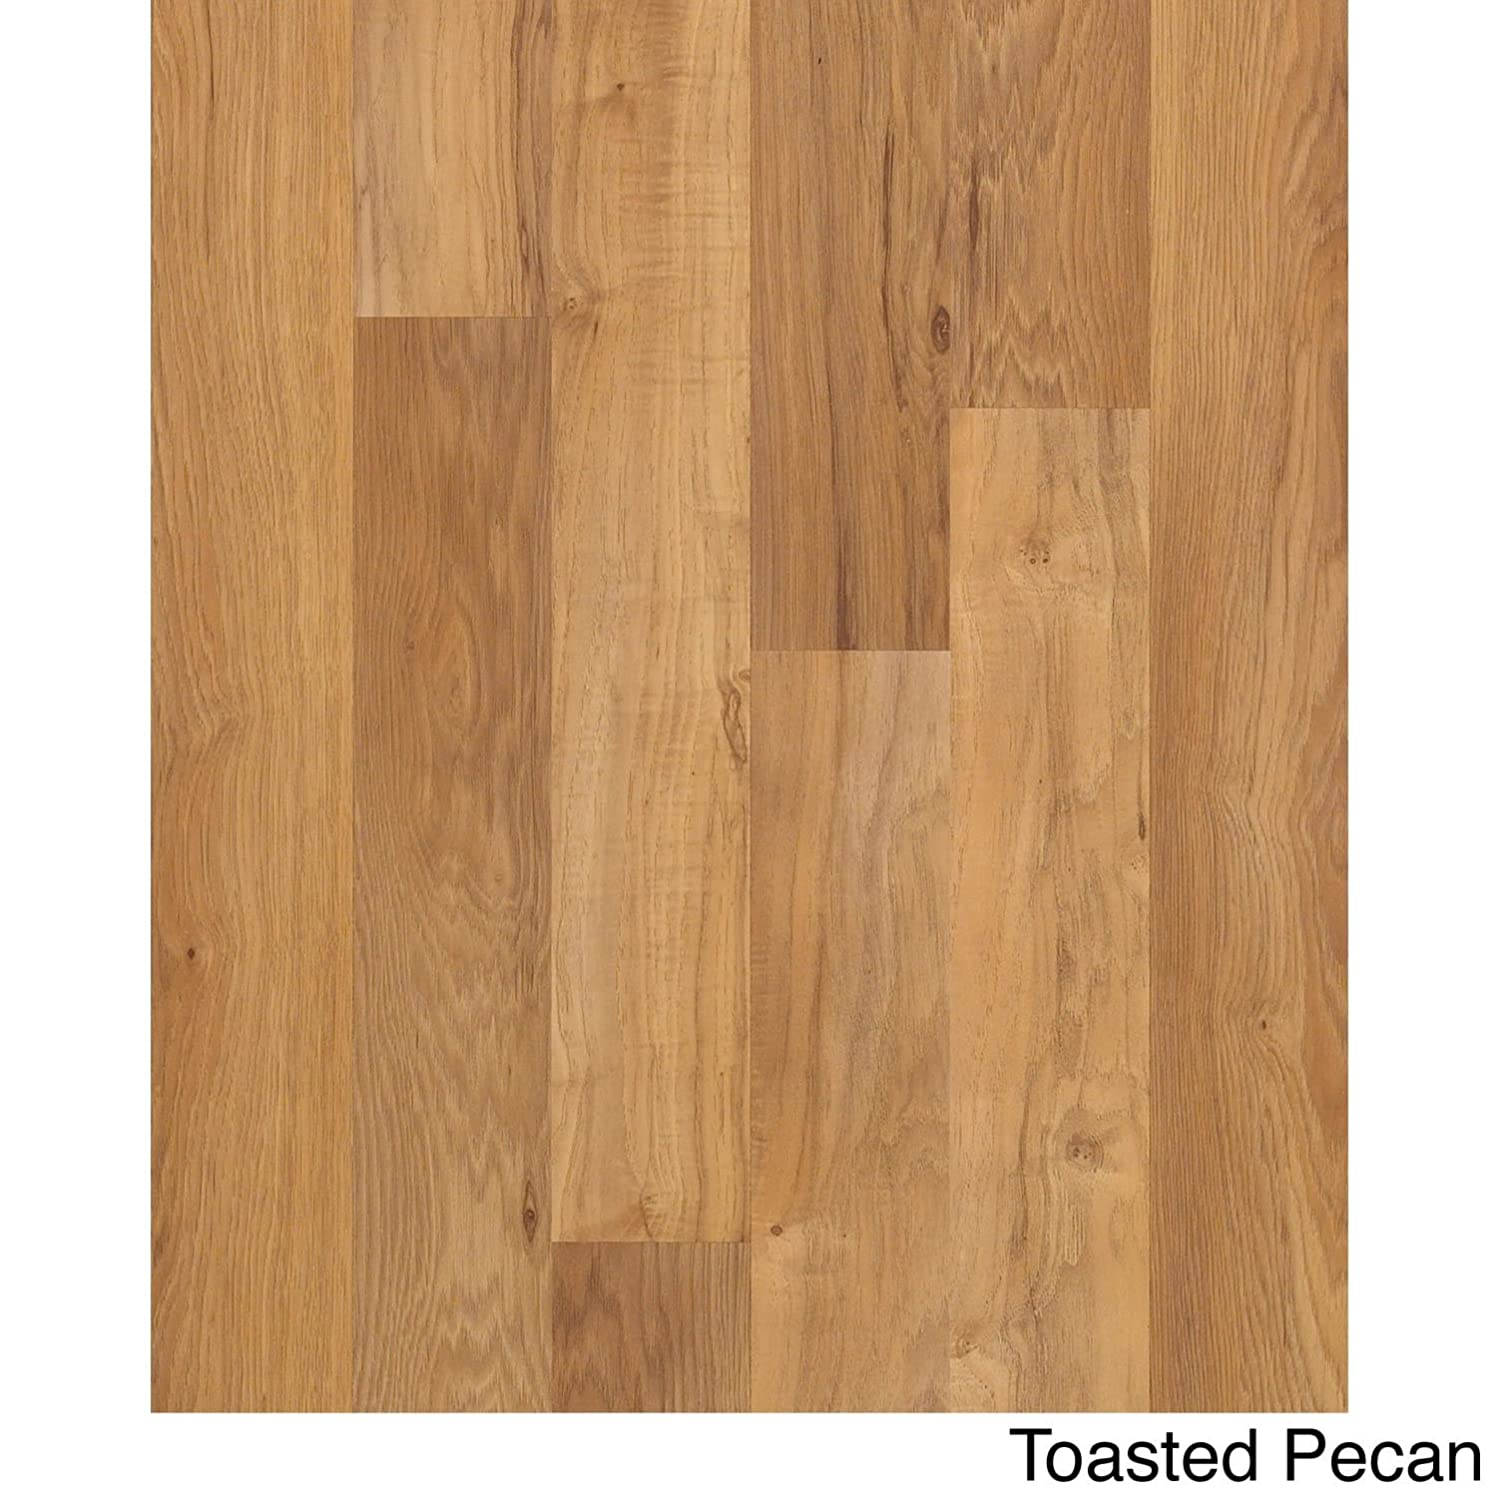 remodel connoisseur photos the flooring with costco laminate remodeling teaser floor harmonics img